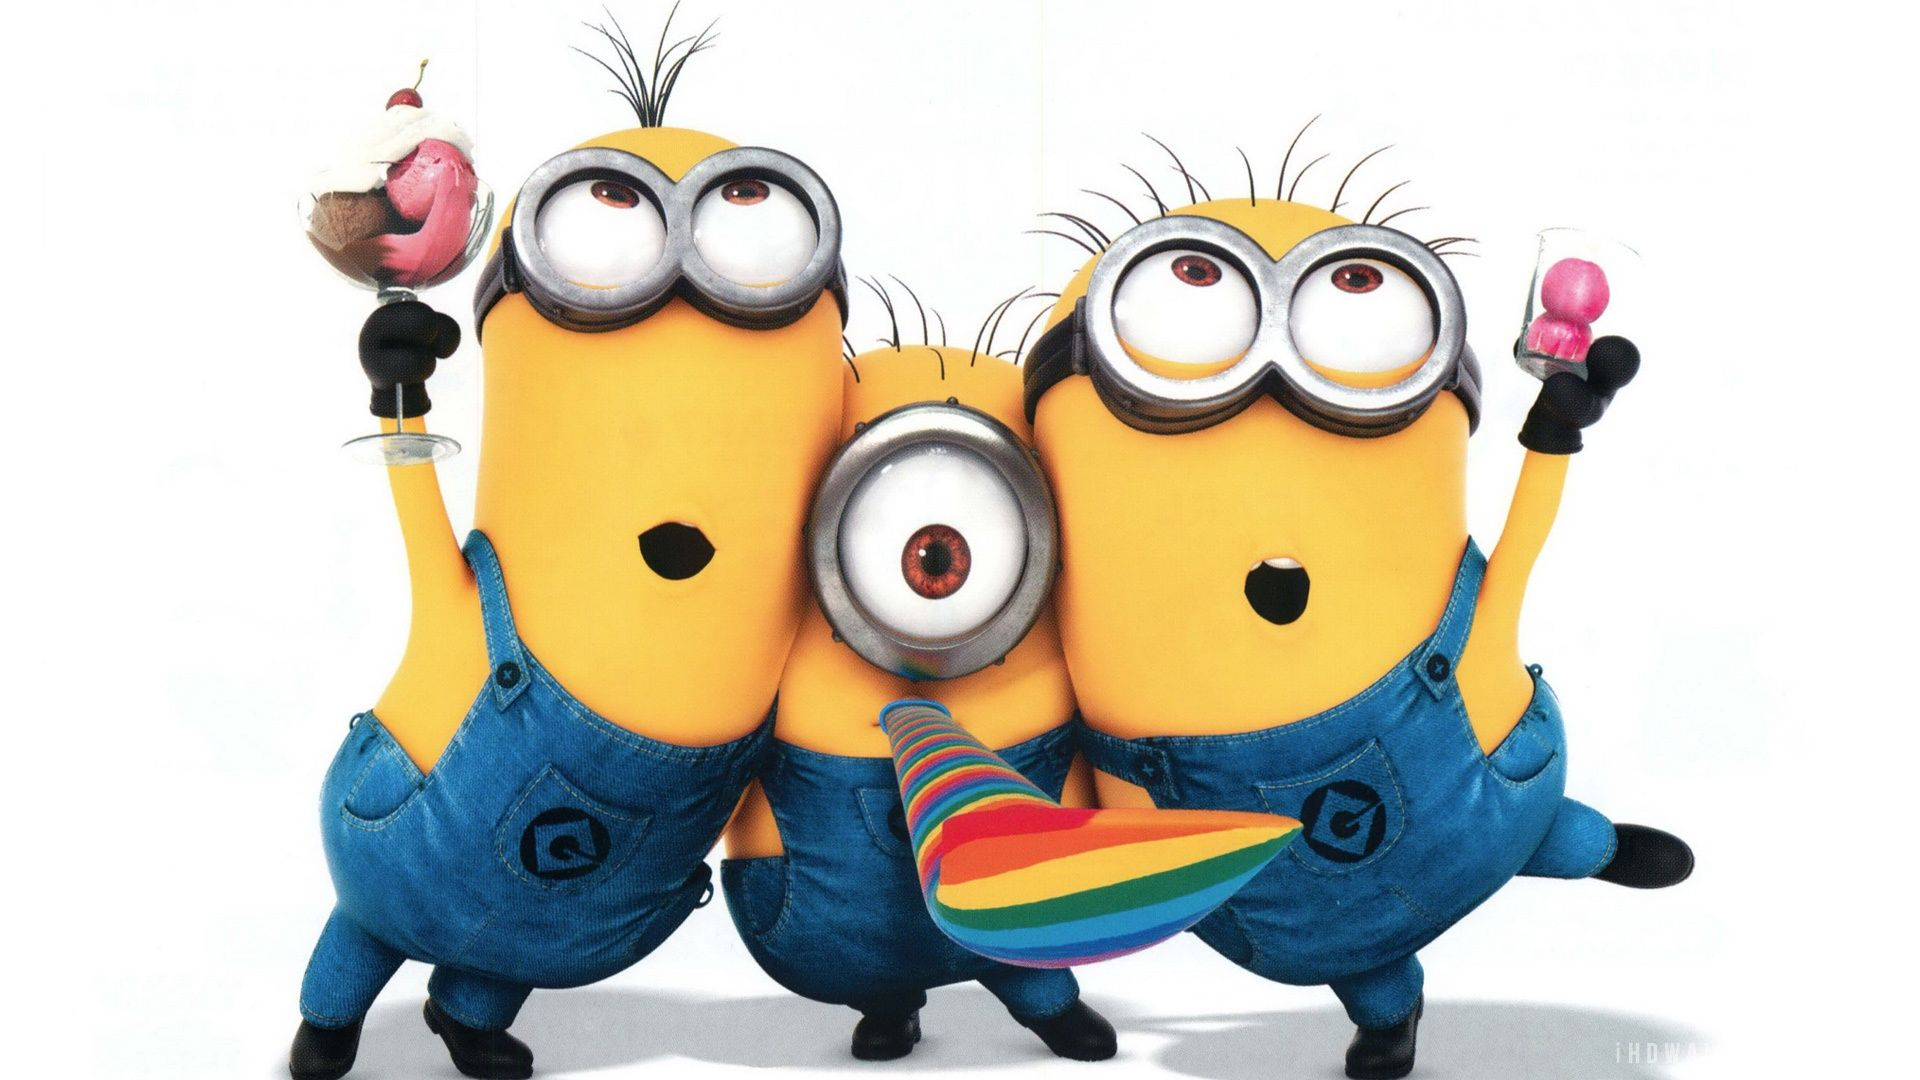 hd despicable me 2 minions hd wallpaper - ihd wallpapers wallpaper